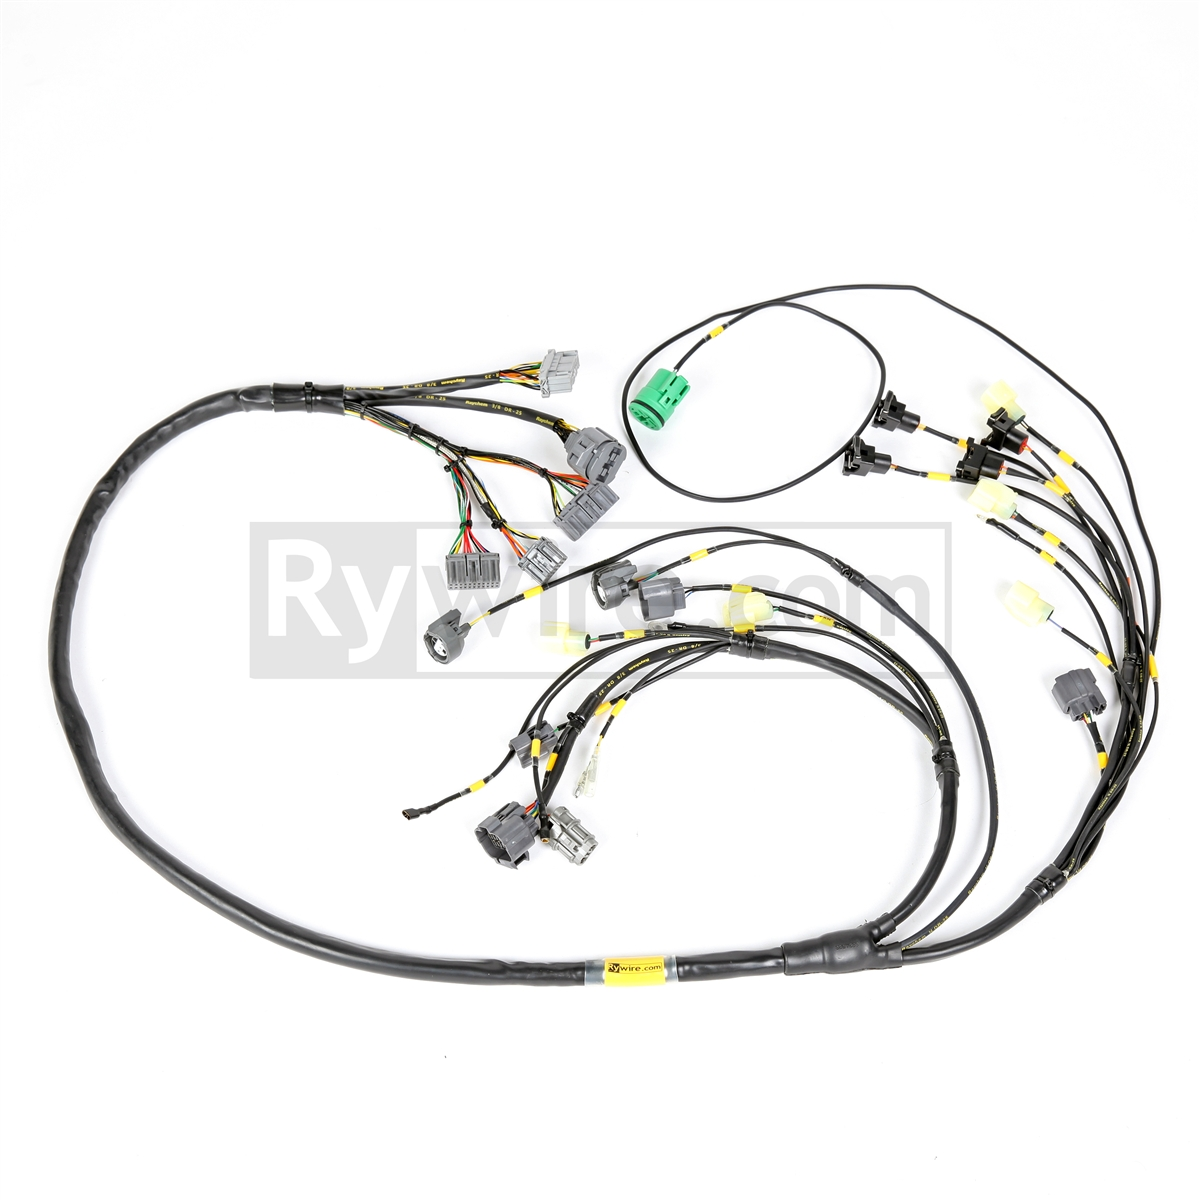 Obd2a Vtec Wiring Harness Oem Guide And Troubleshooting Of To Ecu Rywire Com Mil Spec F Series F20b H H22 Rh Obd1 Honda Diagrams